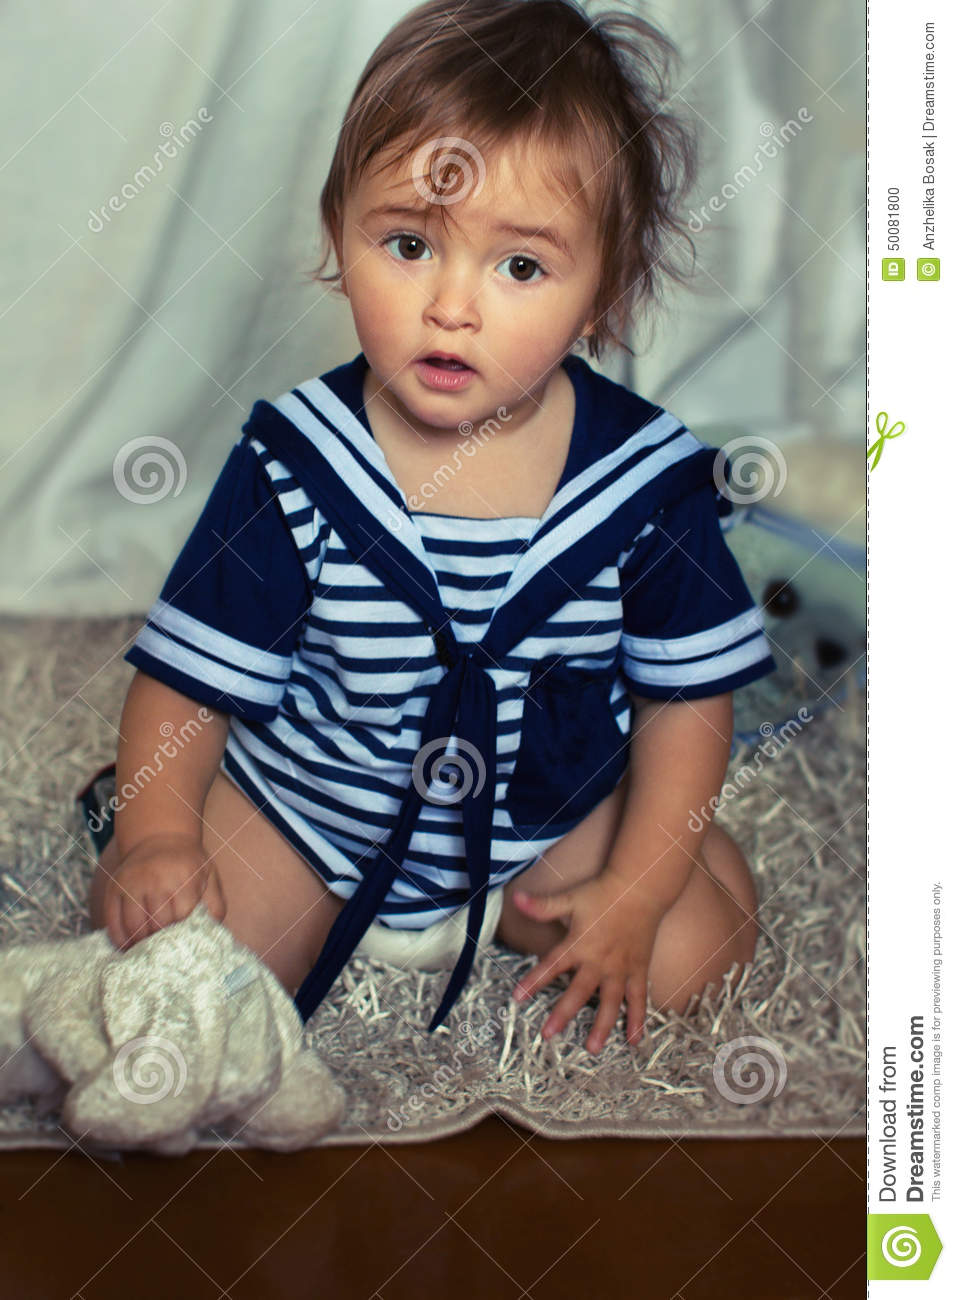 Indignant baby girl in the nautical striped vest sits